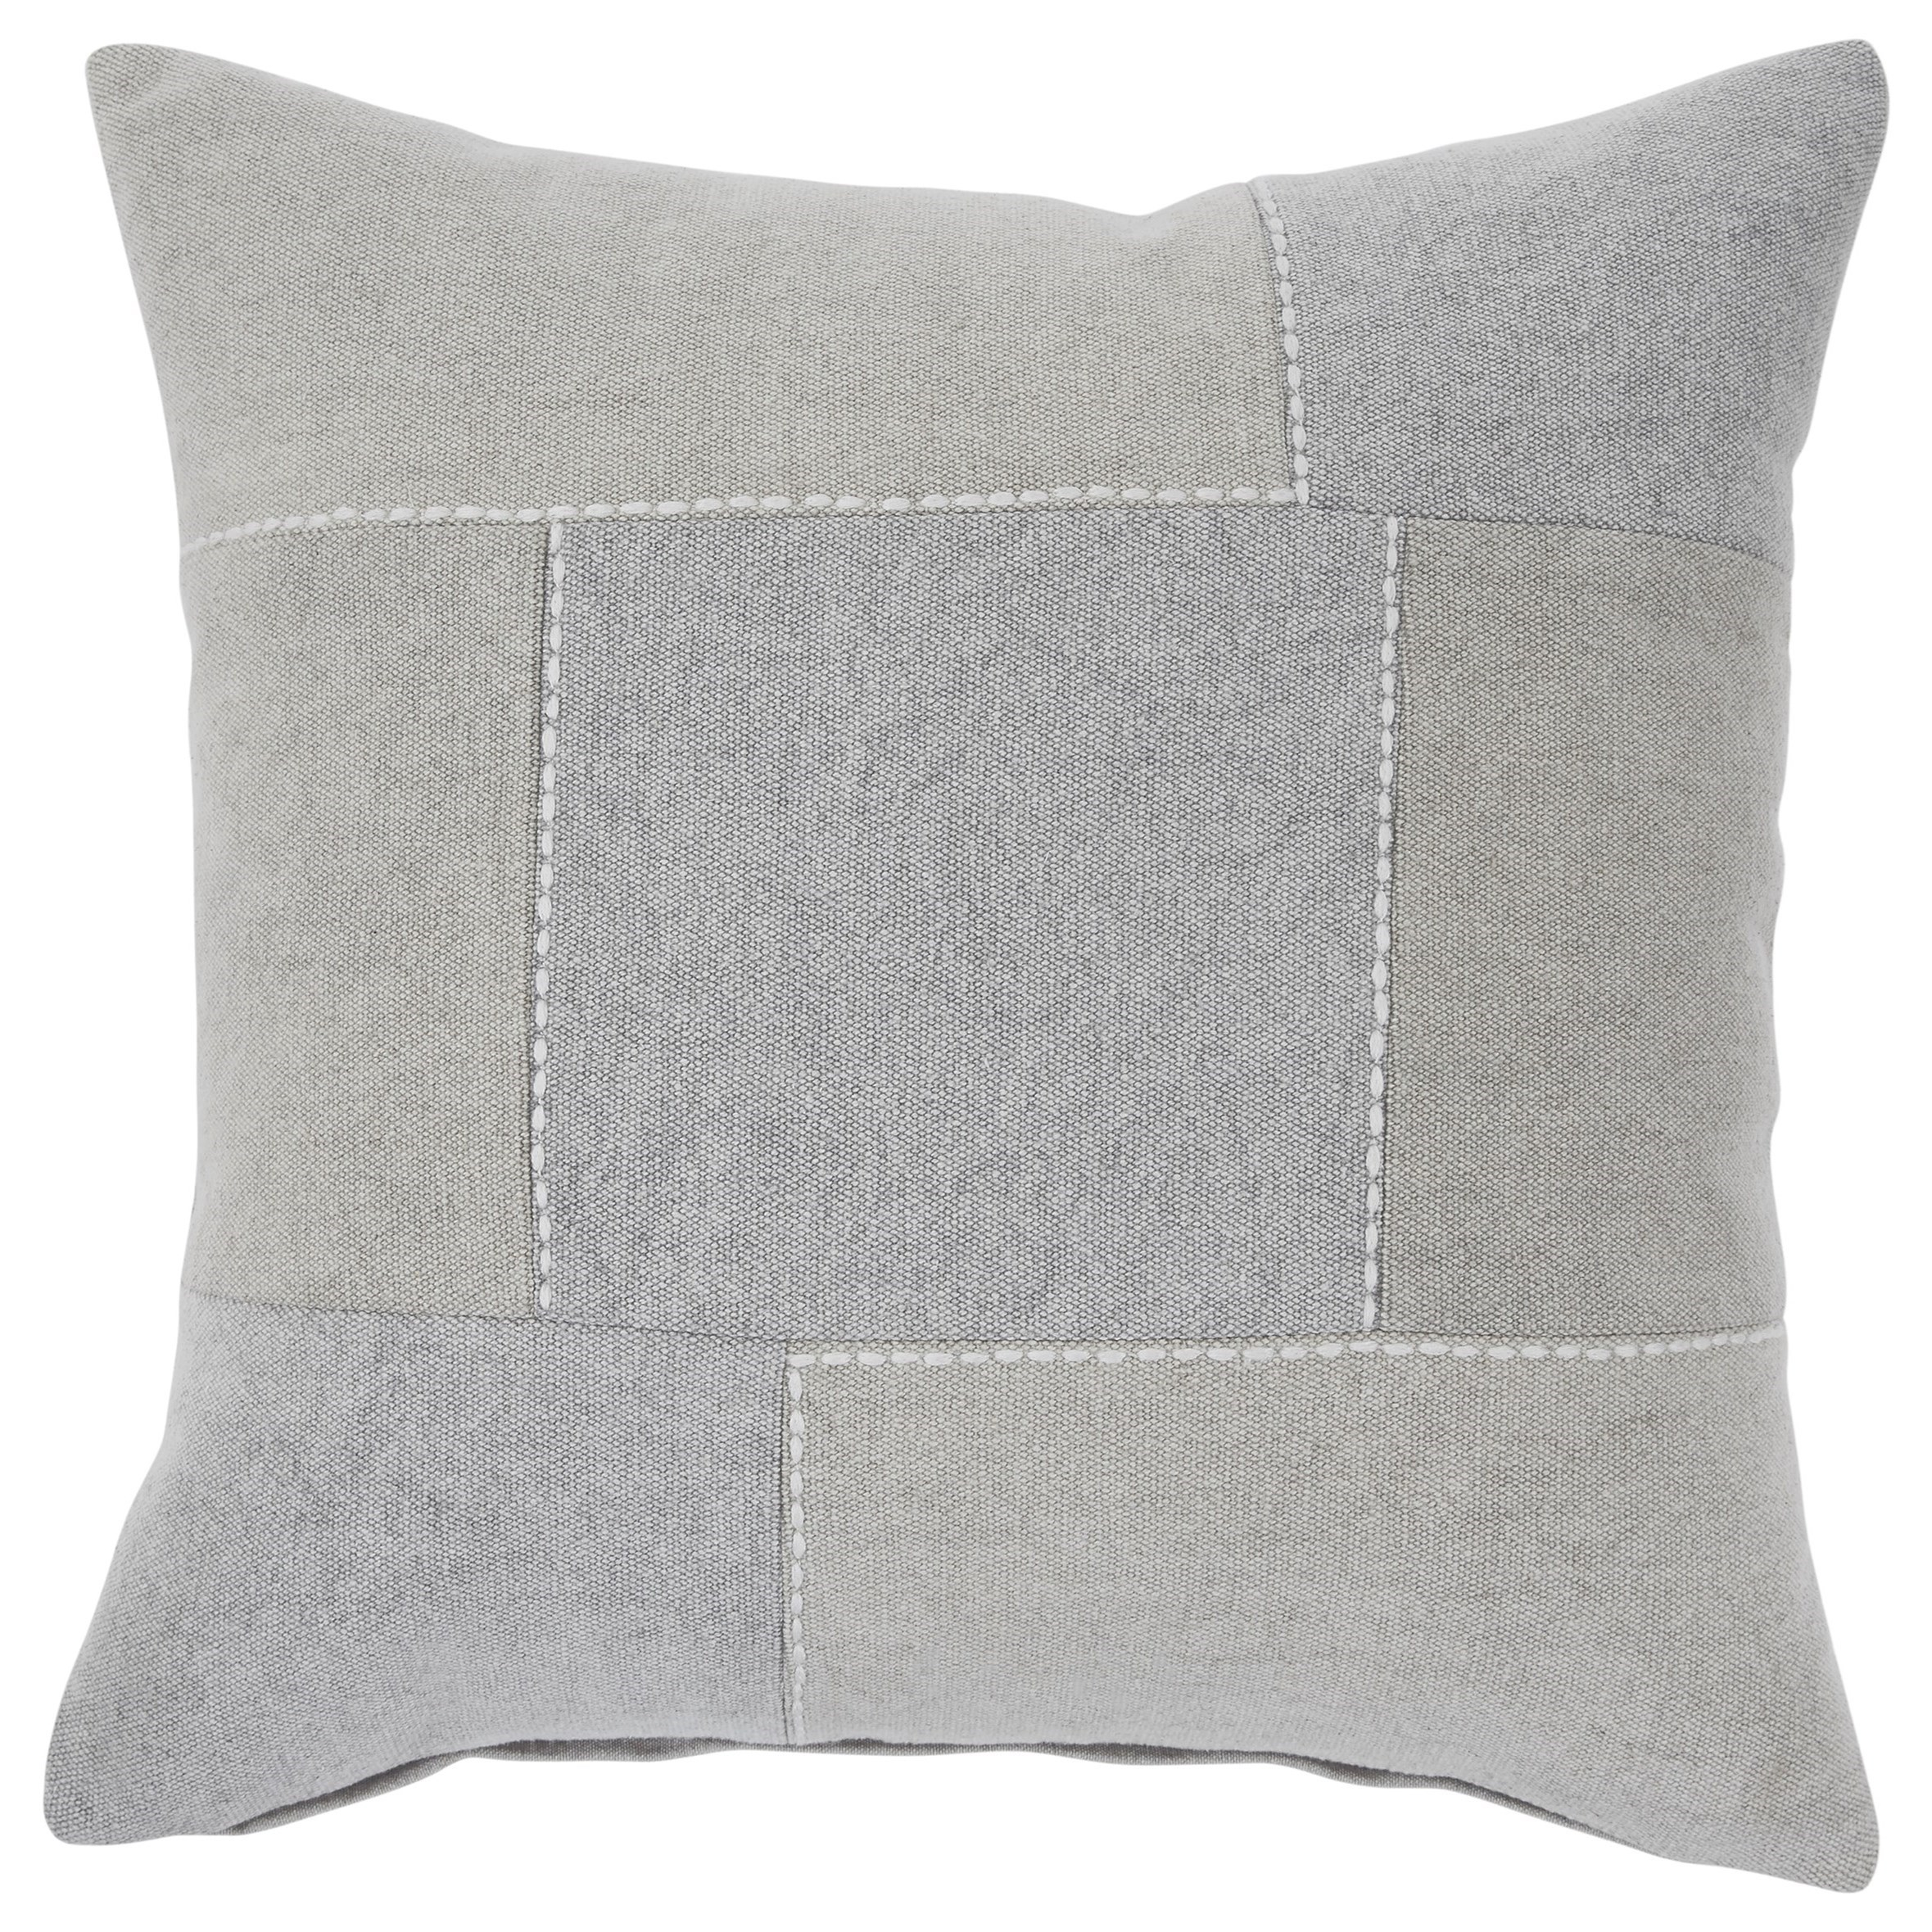 Pillows Lareina Gray/Tan Pillow by Signature Design by Ashley at Dream Home Interiors